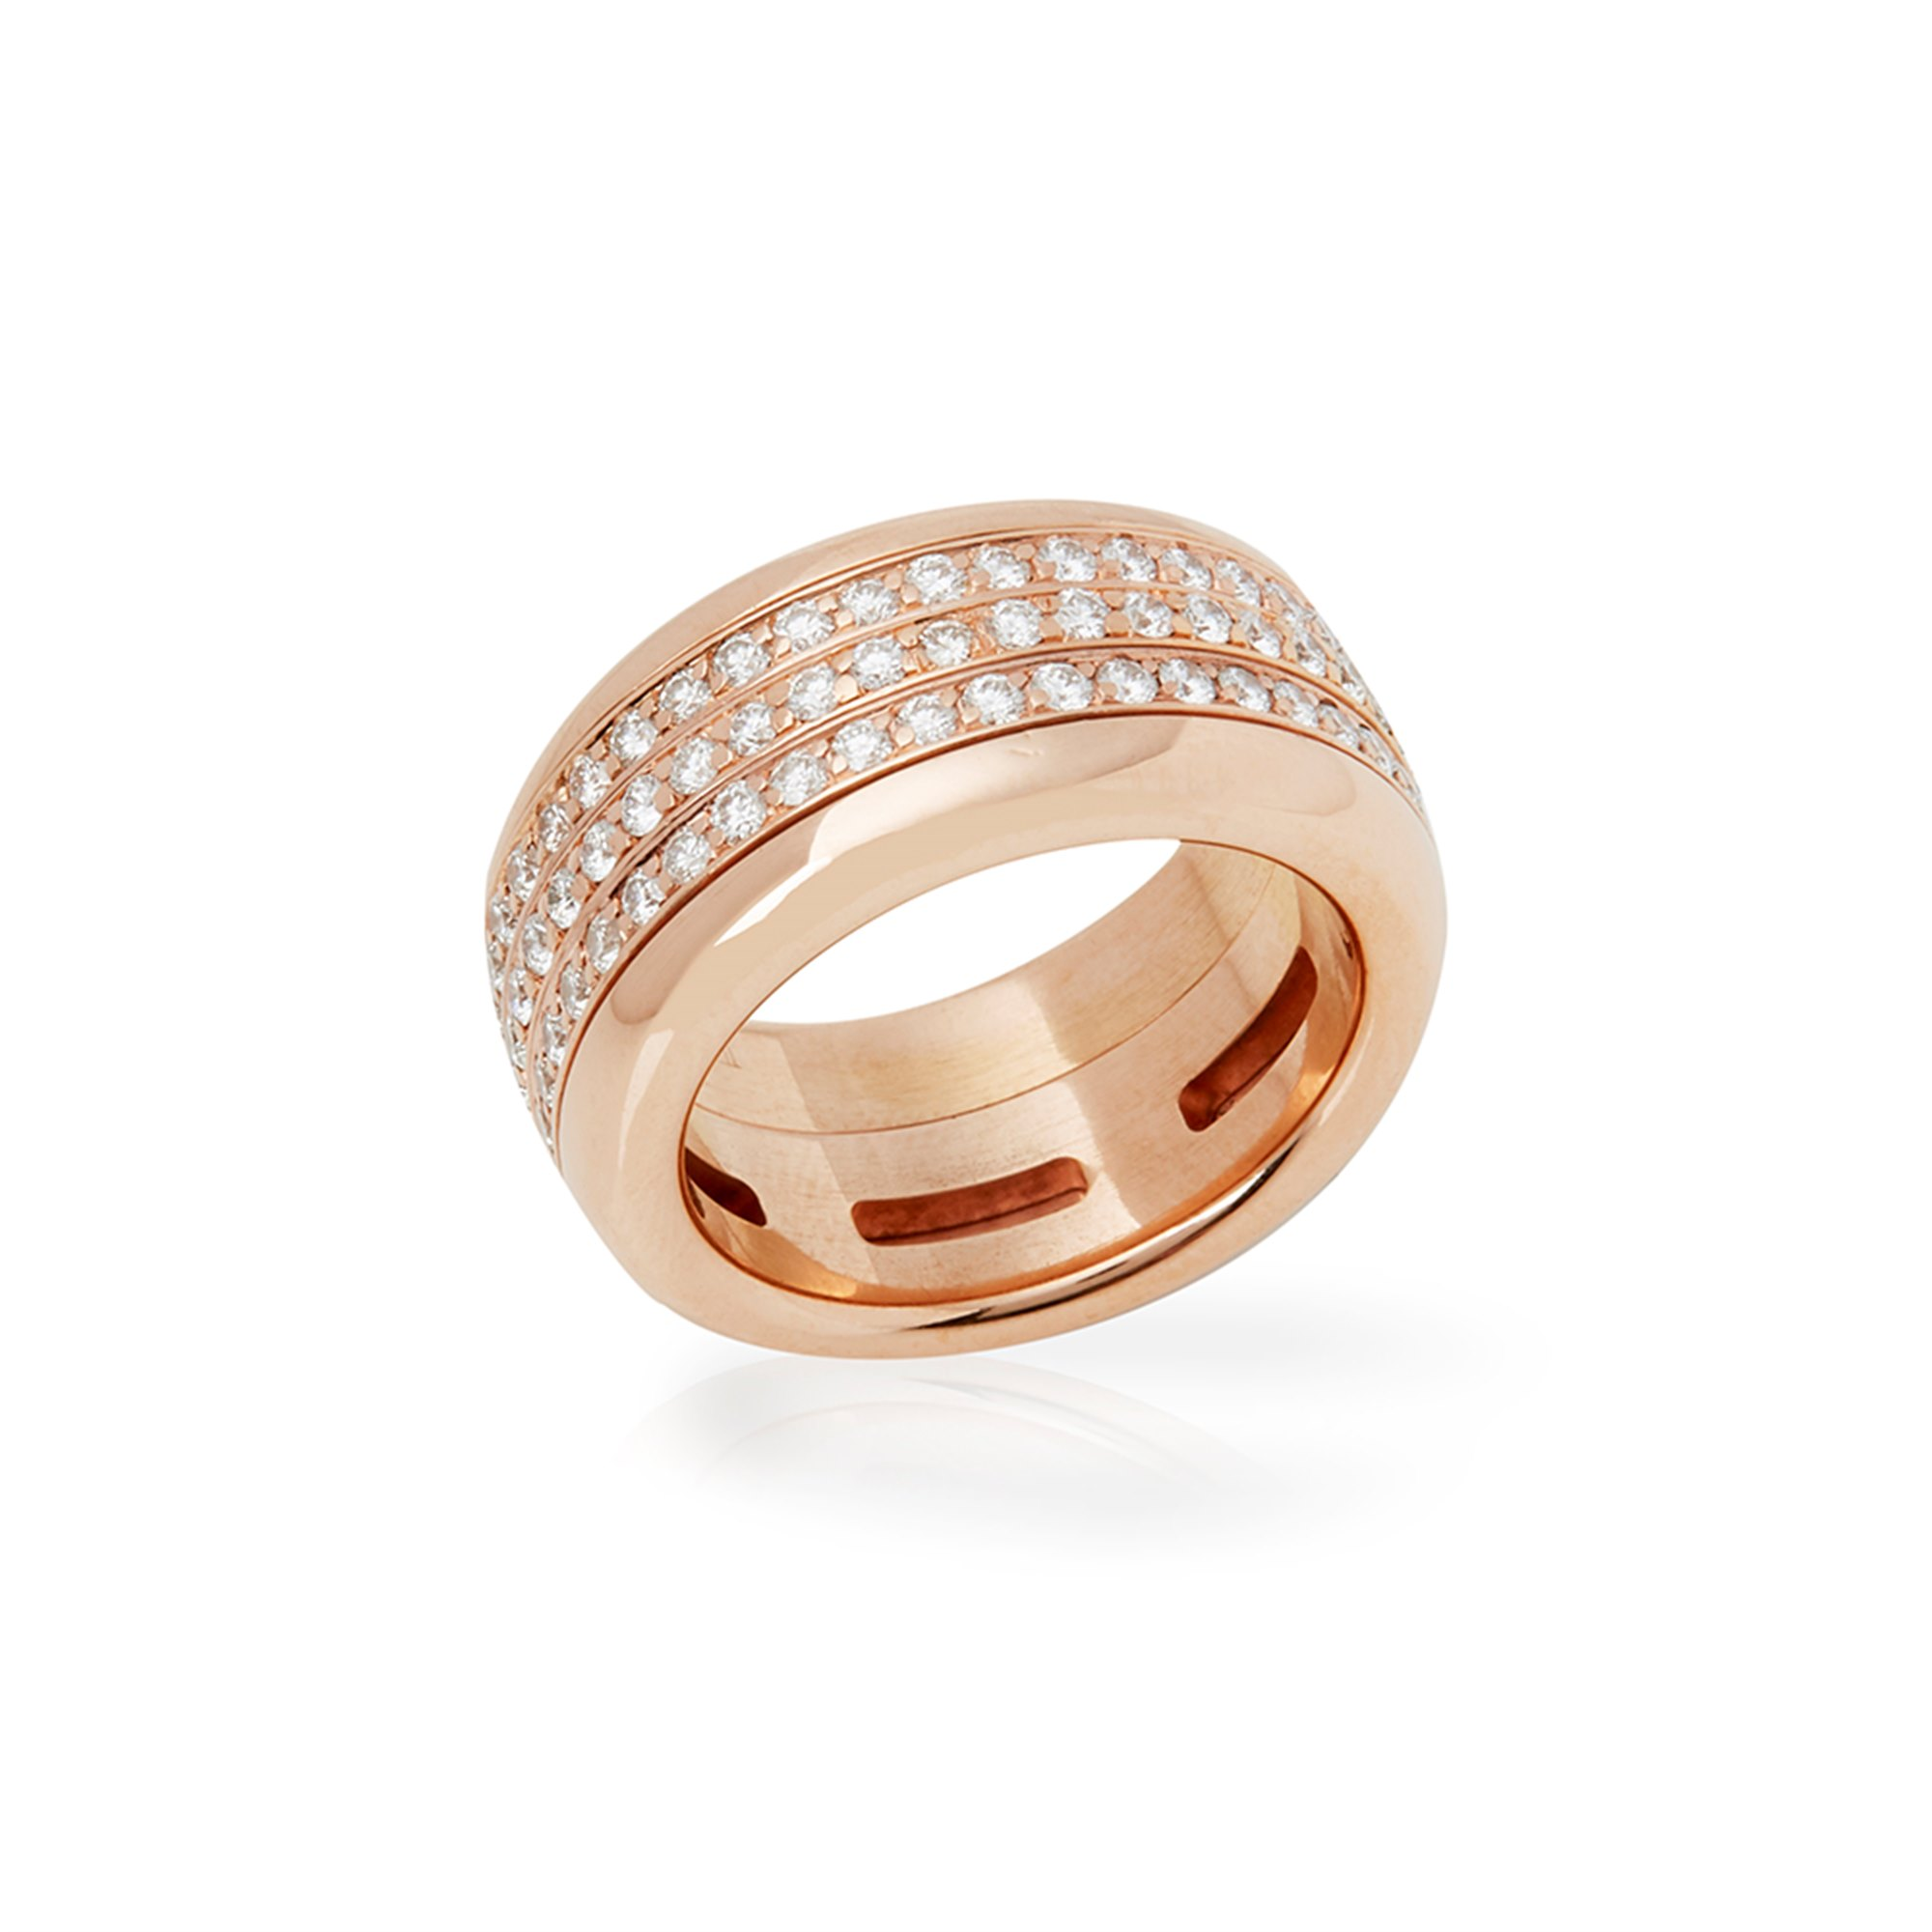 Bucherer 18k Rose Gold Diamond Rotating Variato Ring